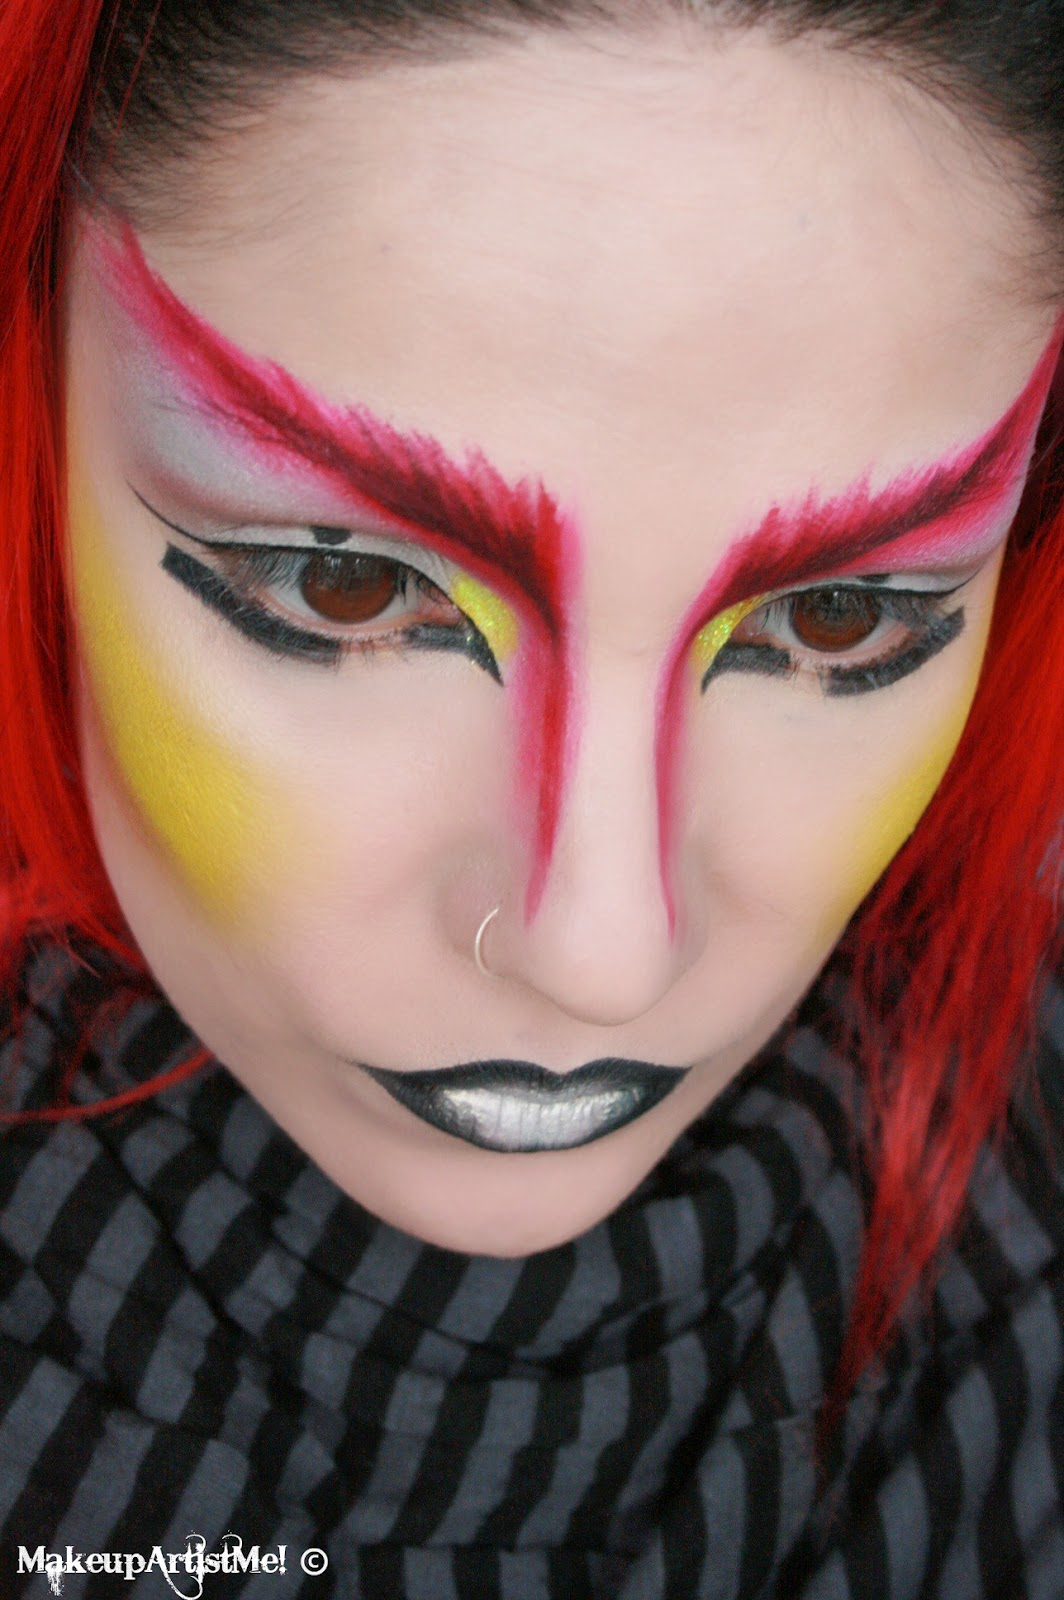 Make Up Fashion And 50 Shades Of Pink: Make-up Artist Me!: Warrior -- An Artistic Makeup Look